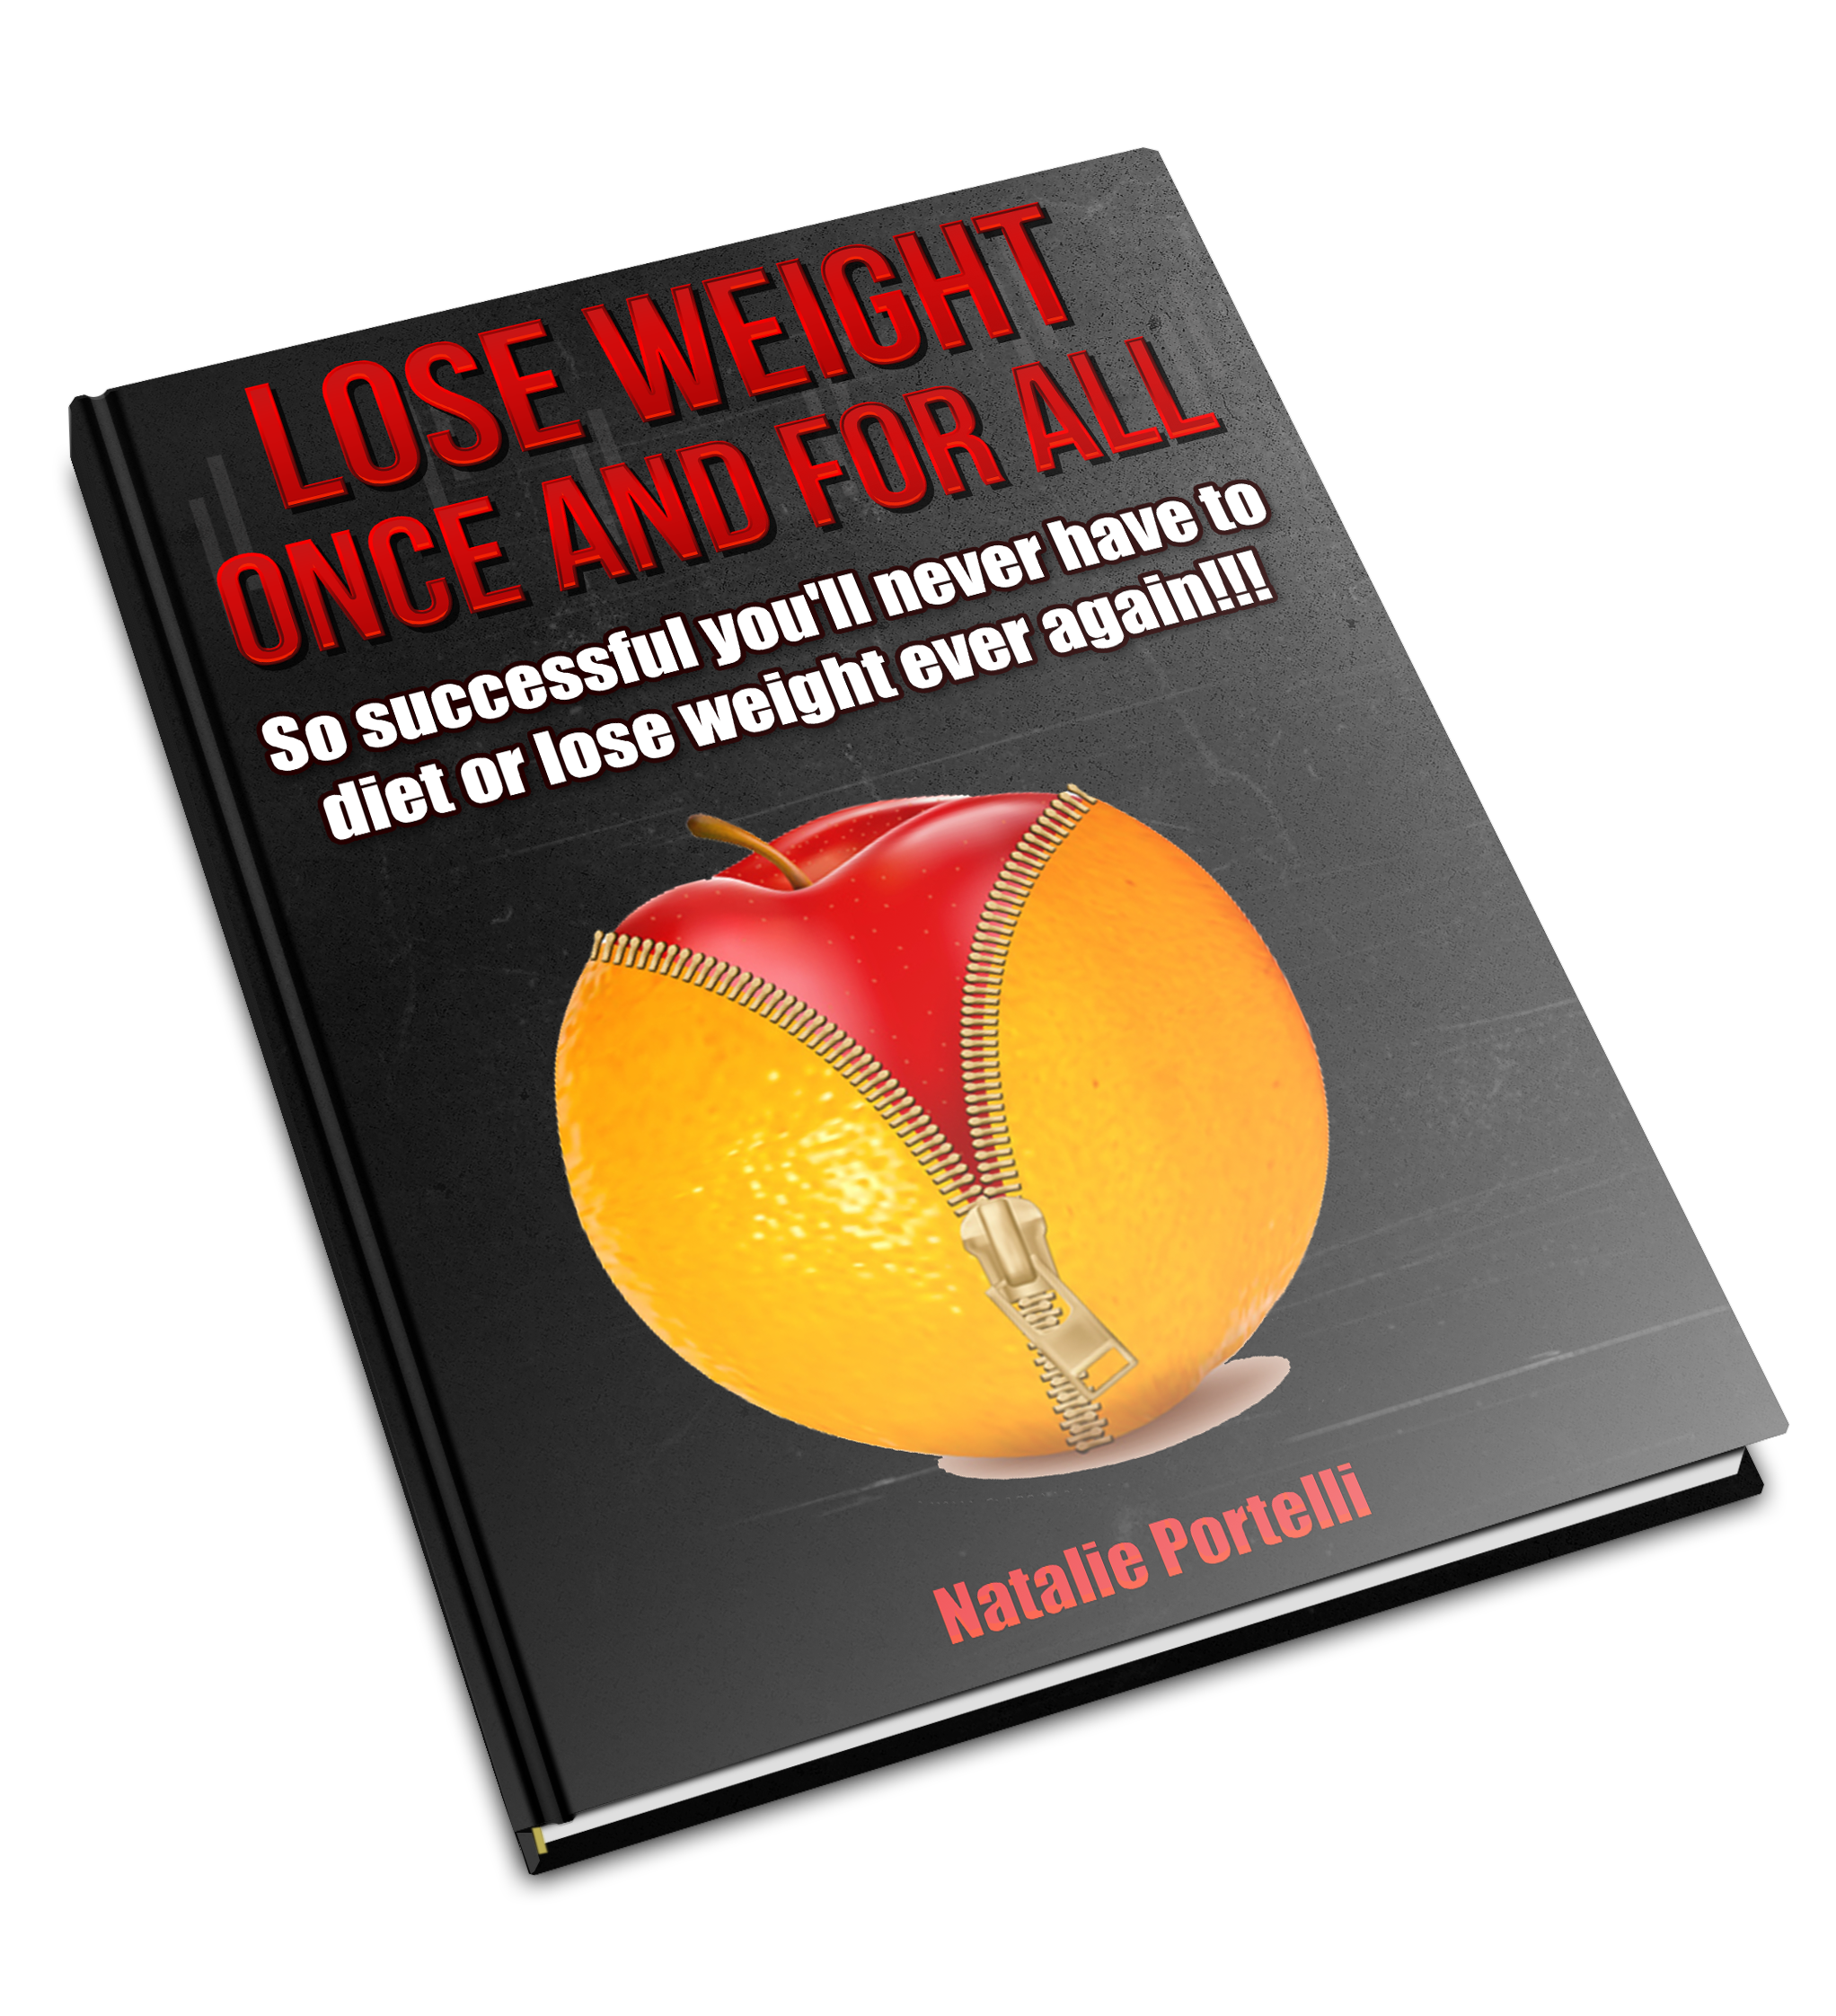 FREE EBOOK - Sign up now